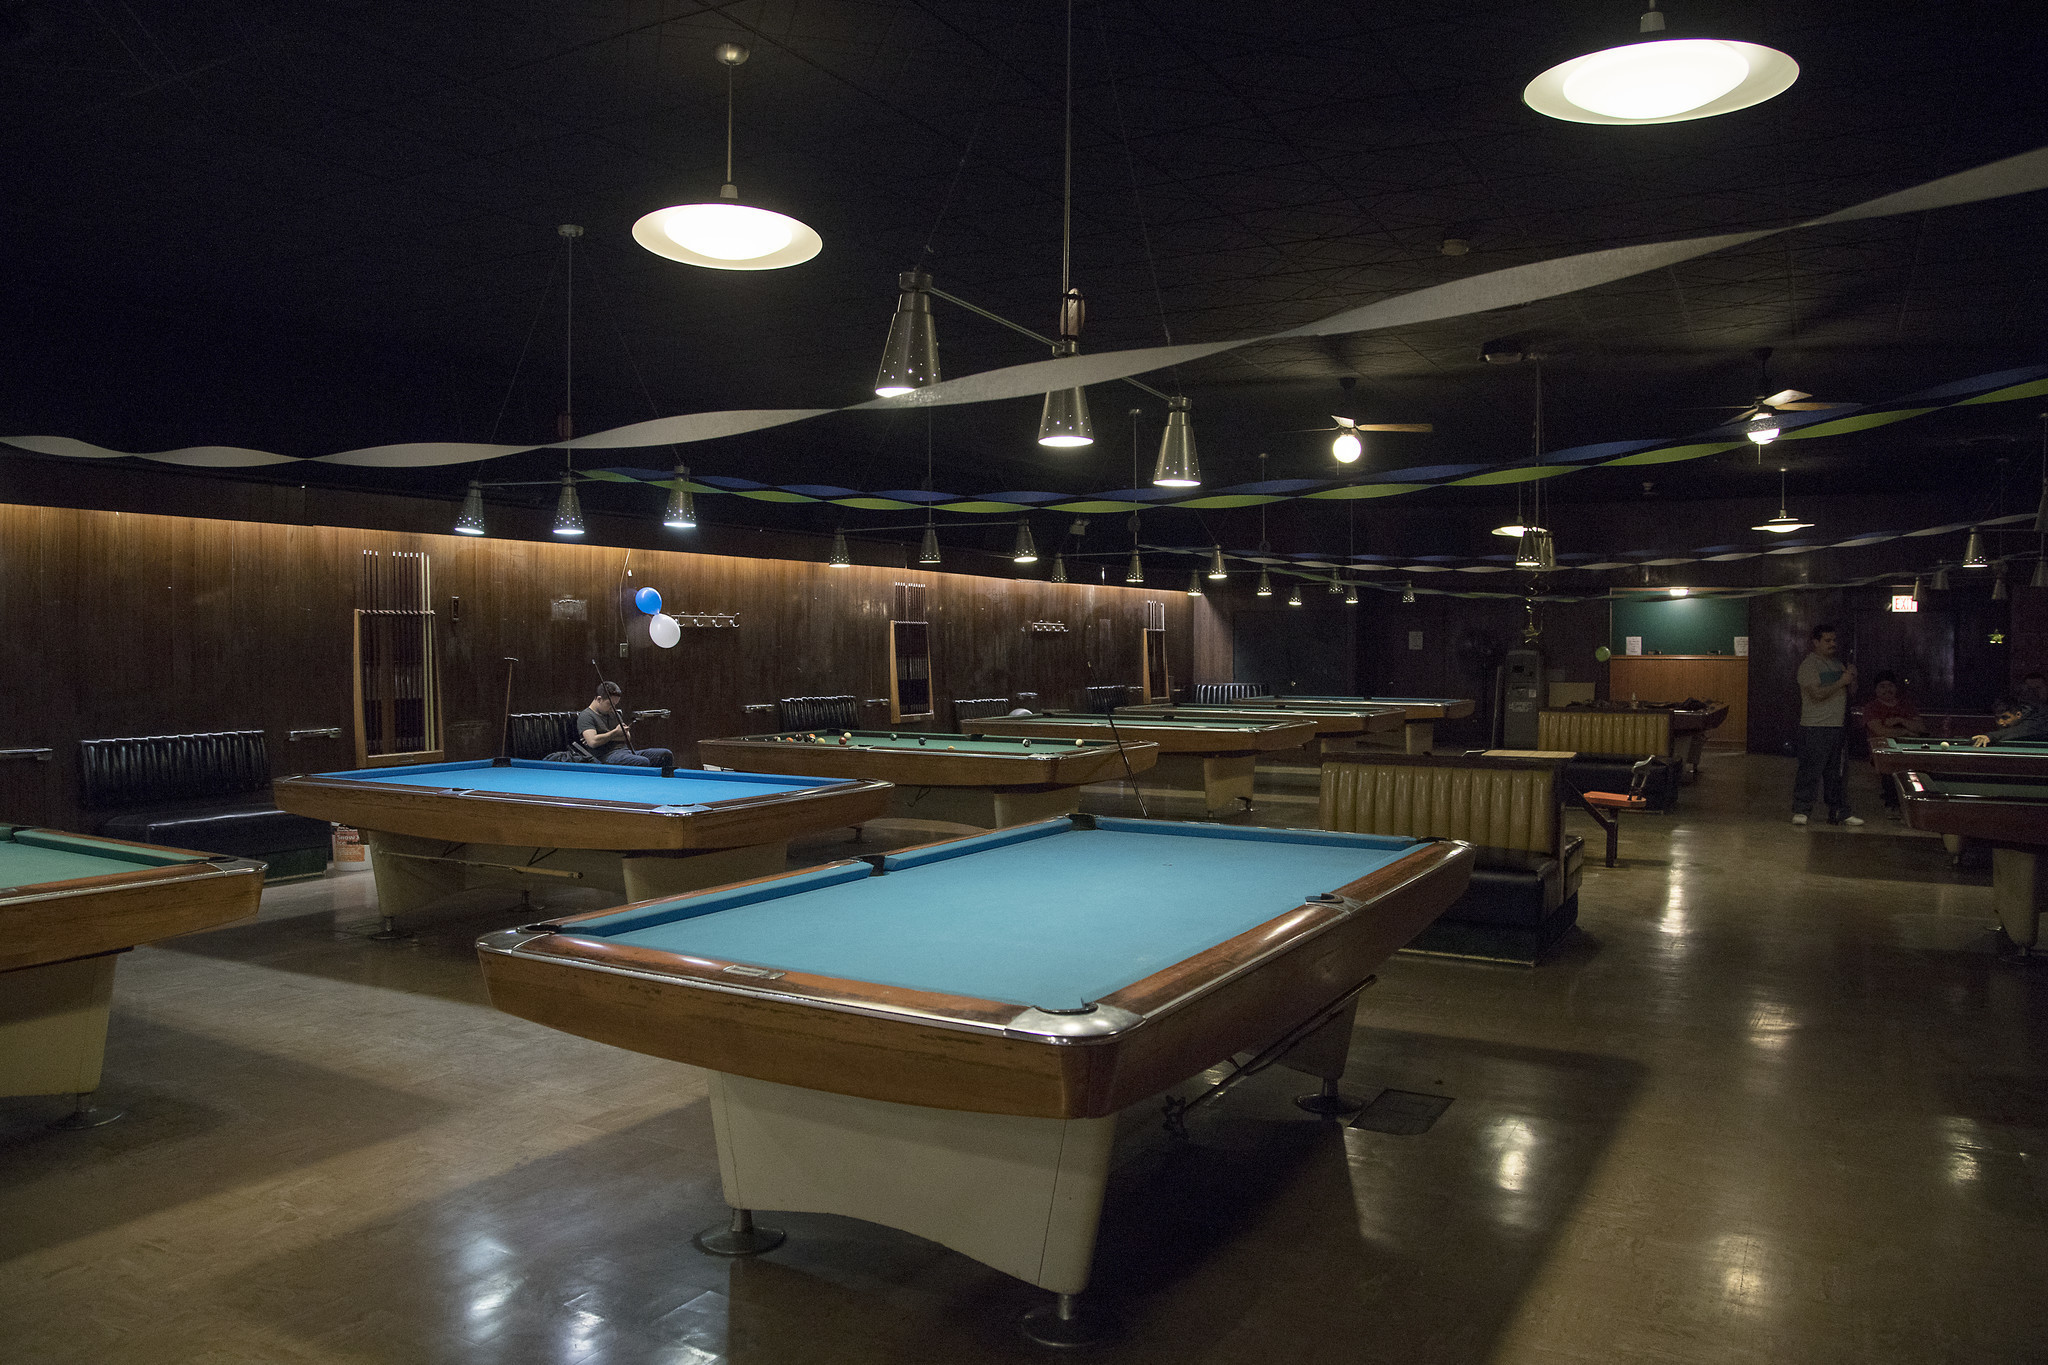 Old School Pool Hall 39 S End Of An Era A Reminder To Cherish